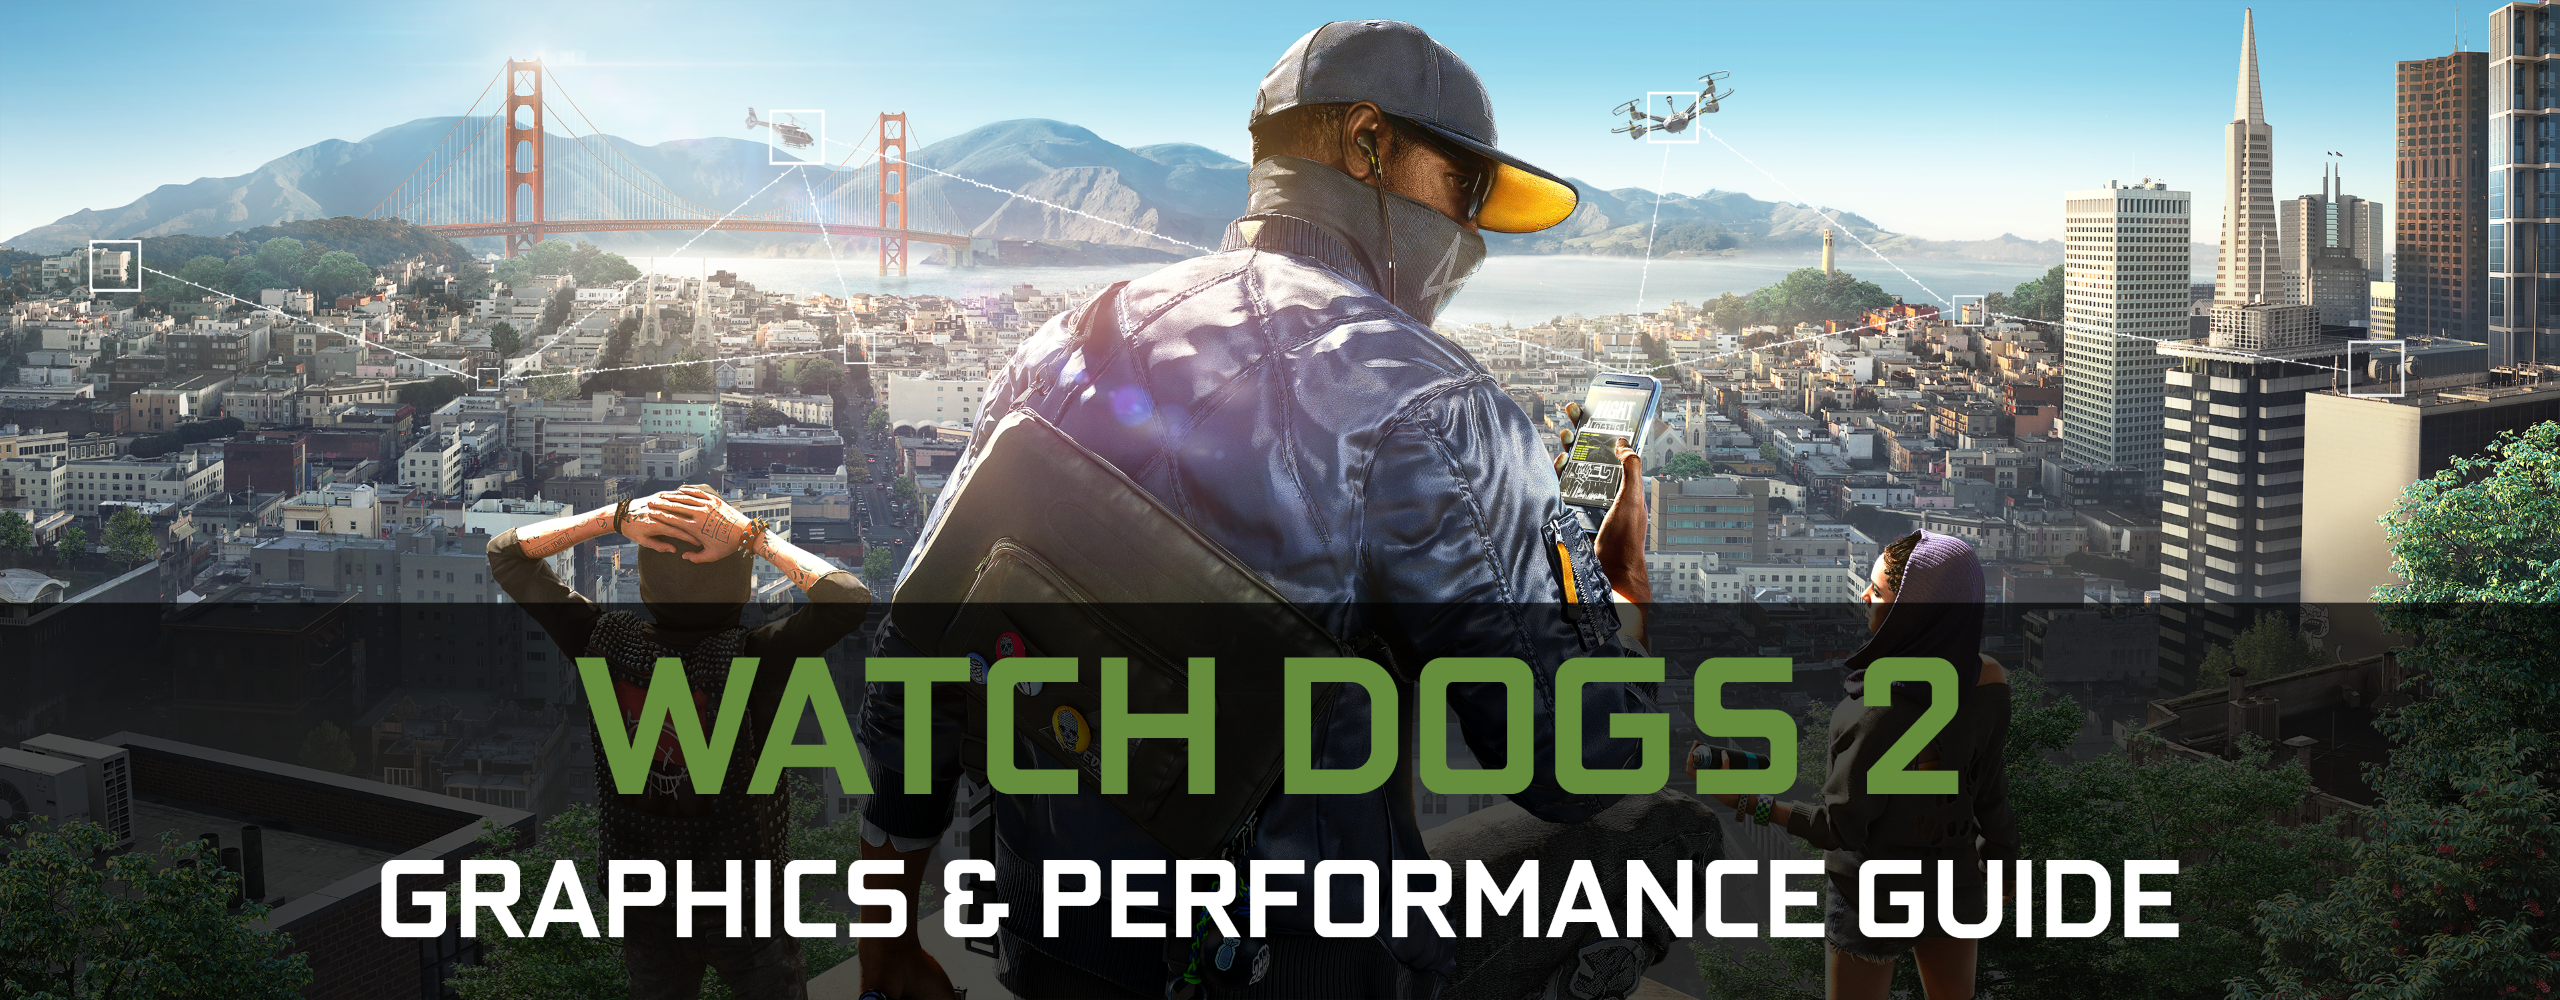 Watch Dogs  Graphics Guide Nvidia